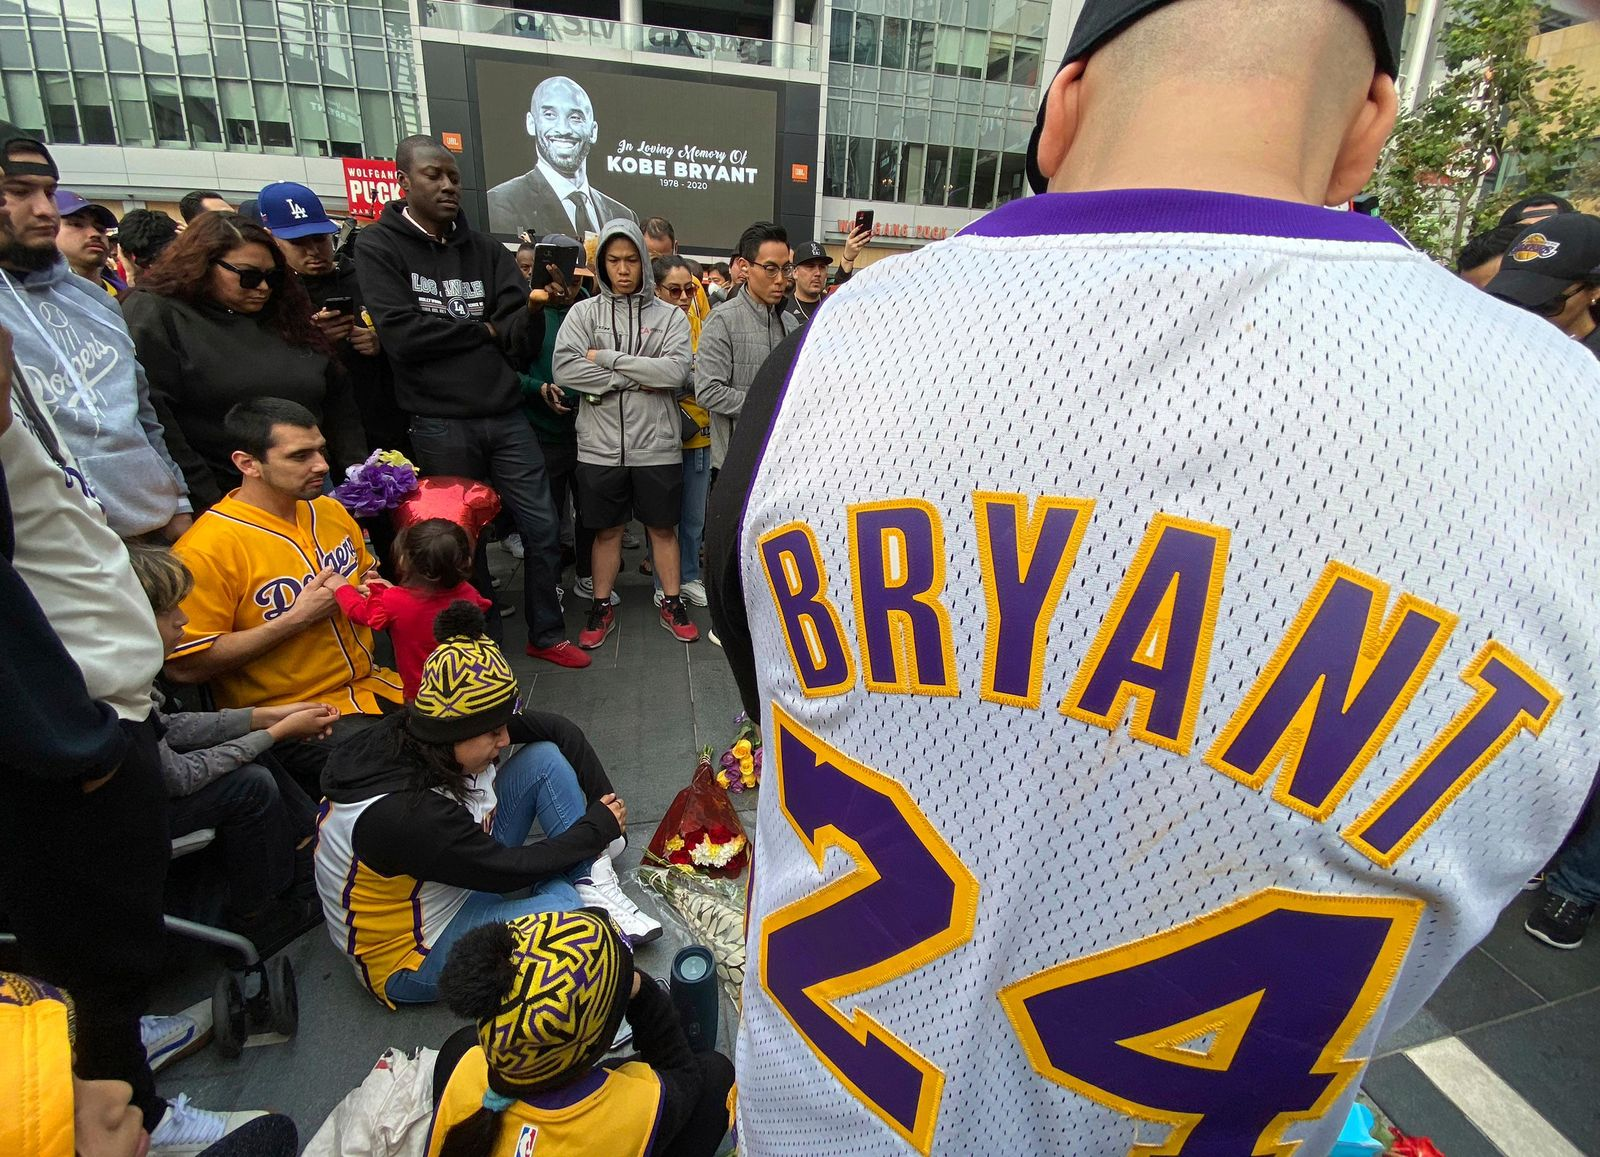 Fans mourn the loss of Kobe Bryant with makeshift memorials in front of La Live across from Staples Center, home of the Los Angeles Lakers in Los Angeles on Sunday, Jan, 26, 2020. Bryant, the 18-time NBA All-Star who won five championships and became one of the greatest basketball players of his generation during a 20-year career with the Los Angeles Lakers, died in a helicopter crash Sunday. (Keith Birmingham/The Orange County Register via AP)